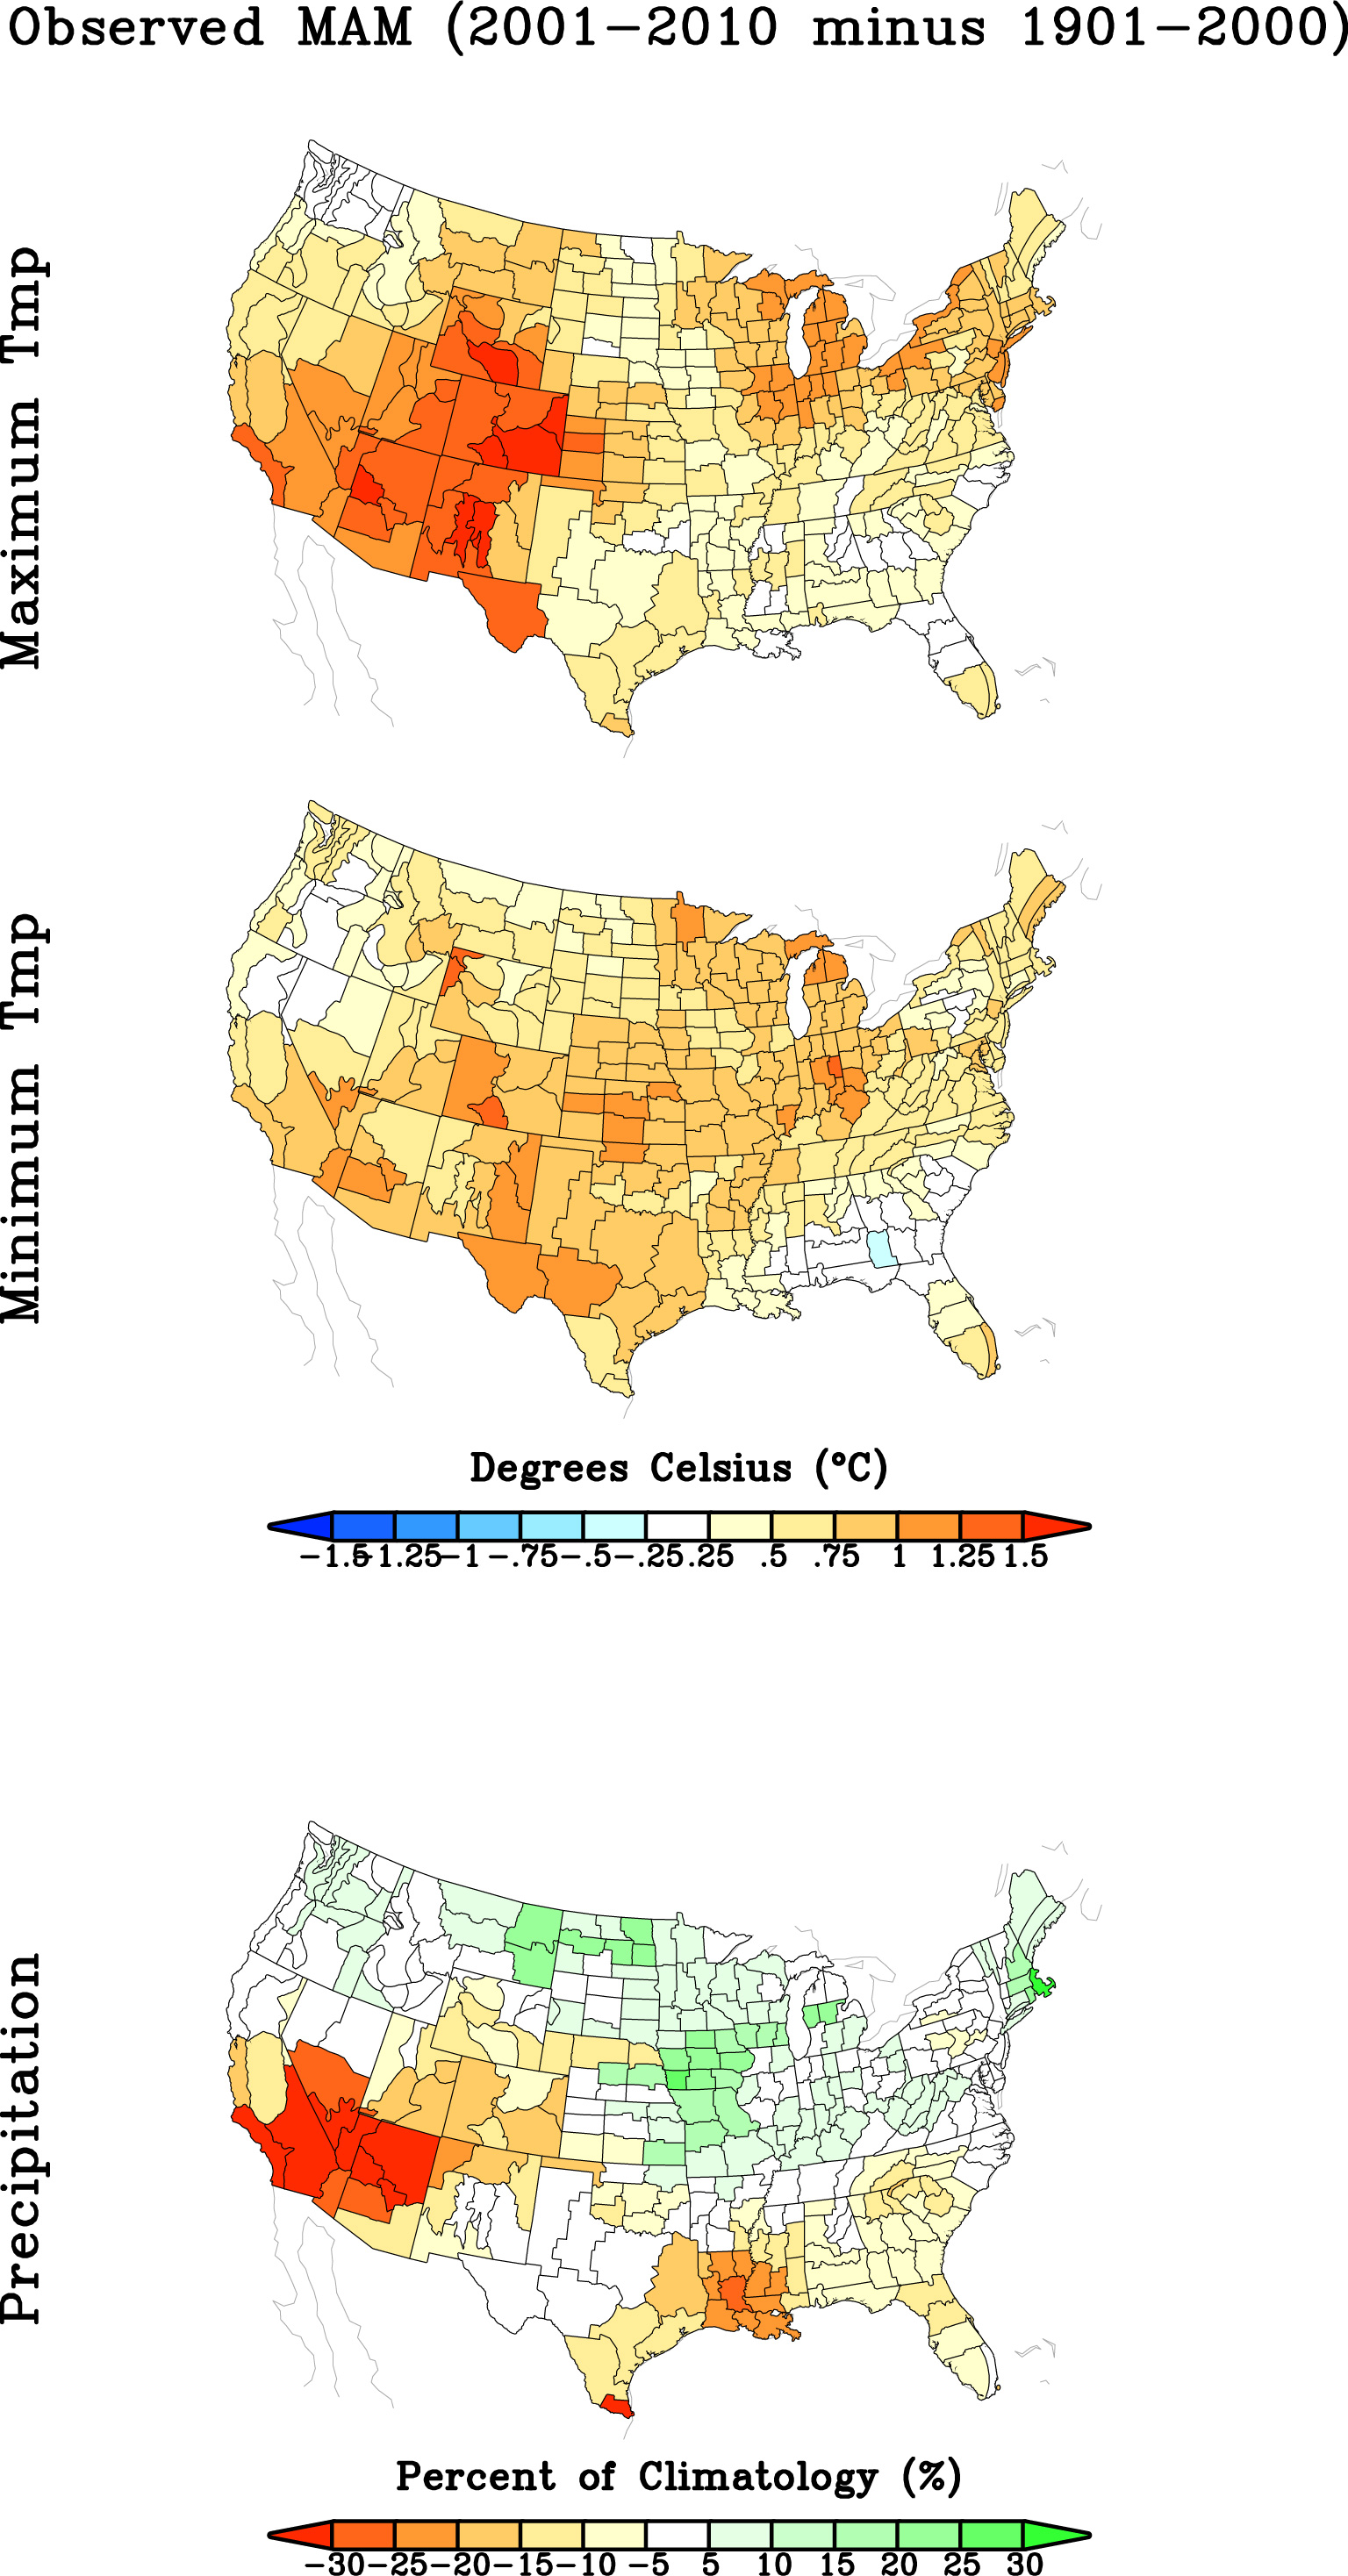 Observed Temperature/Precipitation Trends - 1901-2010